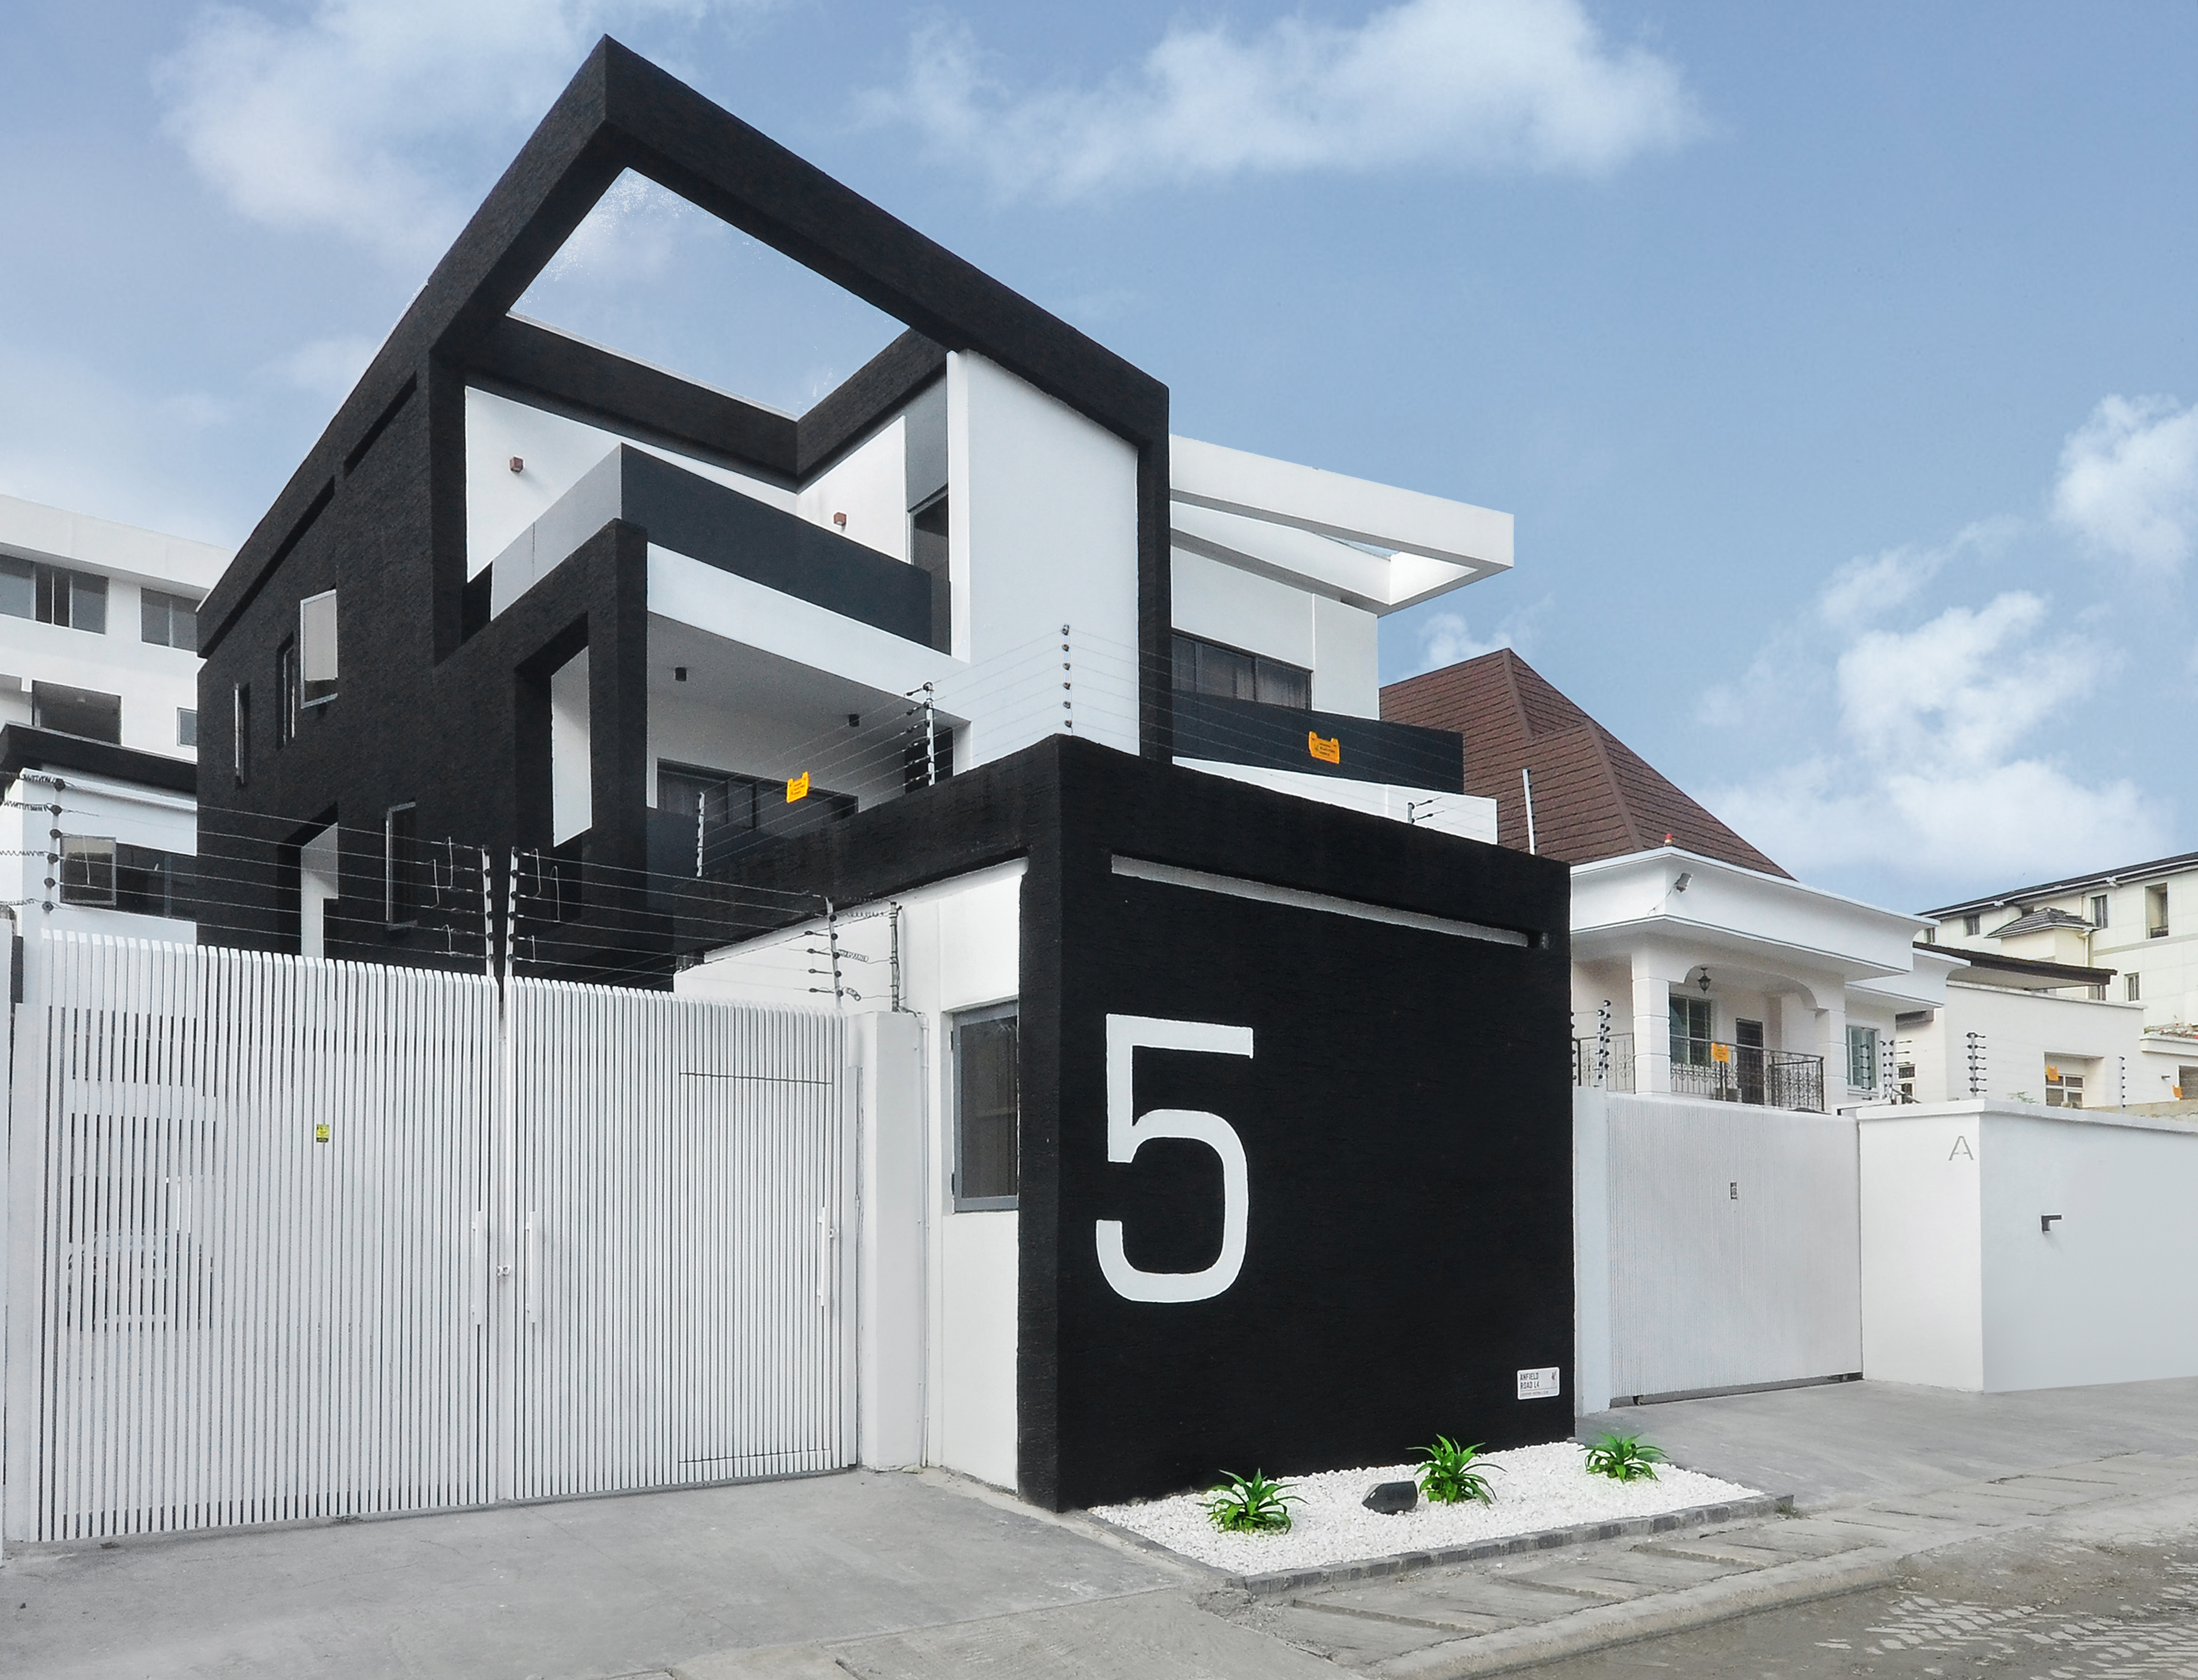 The sharp angles and clean lines hence the name scissor evoke a sense of dynamism that most nigerian residential design is